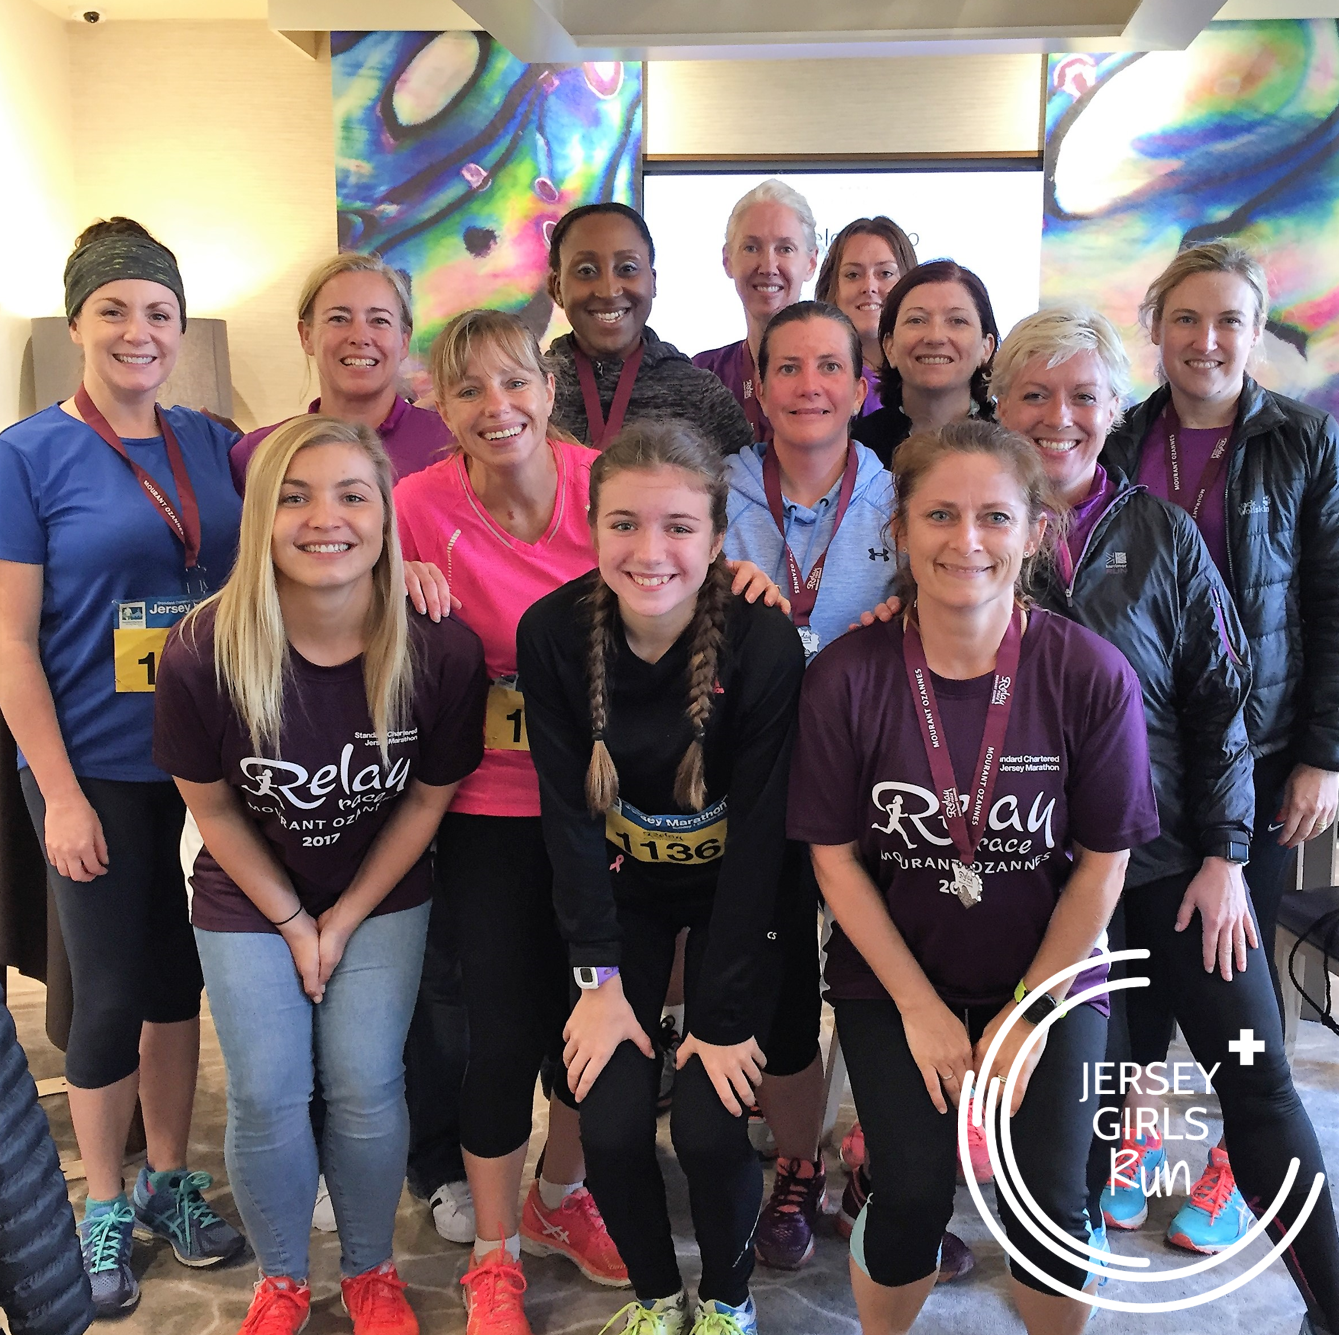 1 OCTOBER 2017 - Jersey Marathon - A number of JERSEY GIRLS were running in the Marathon Relay either for JERSEY GIRLS teams, work teams or charity teams. It was great to see so many of them participating. A mention to Karran who was ran the full marathon raising funds for the Hazil Brown Trust.